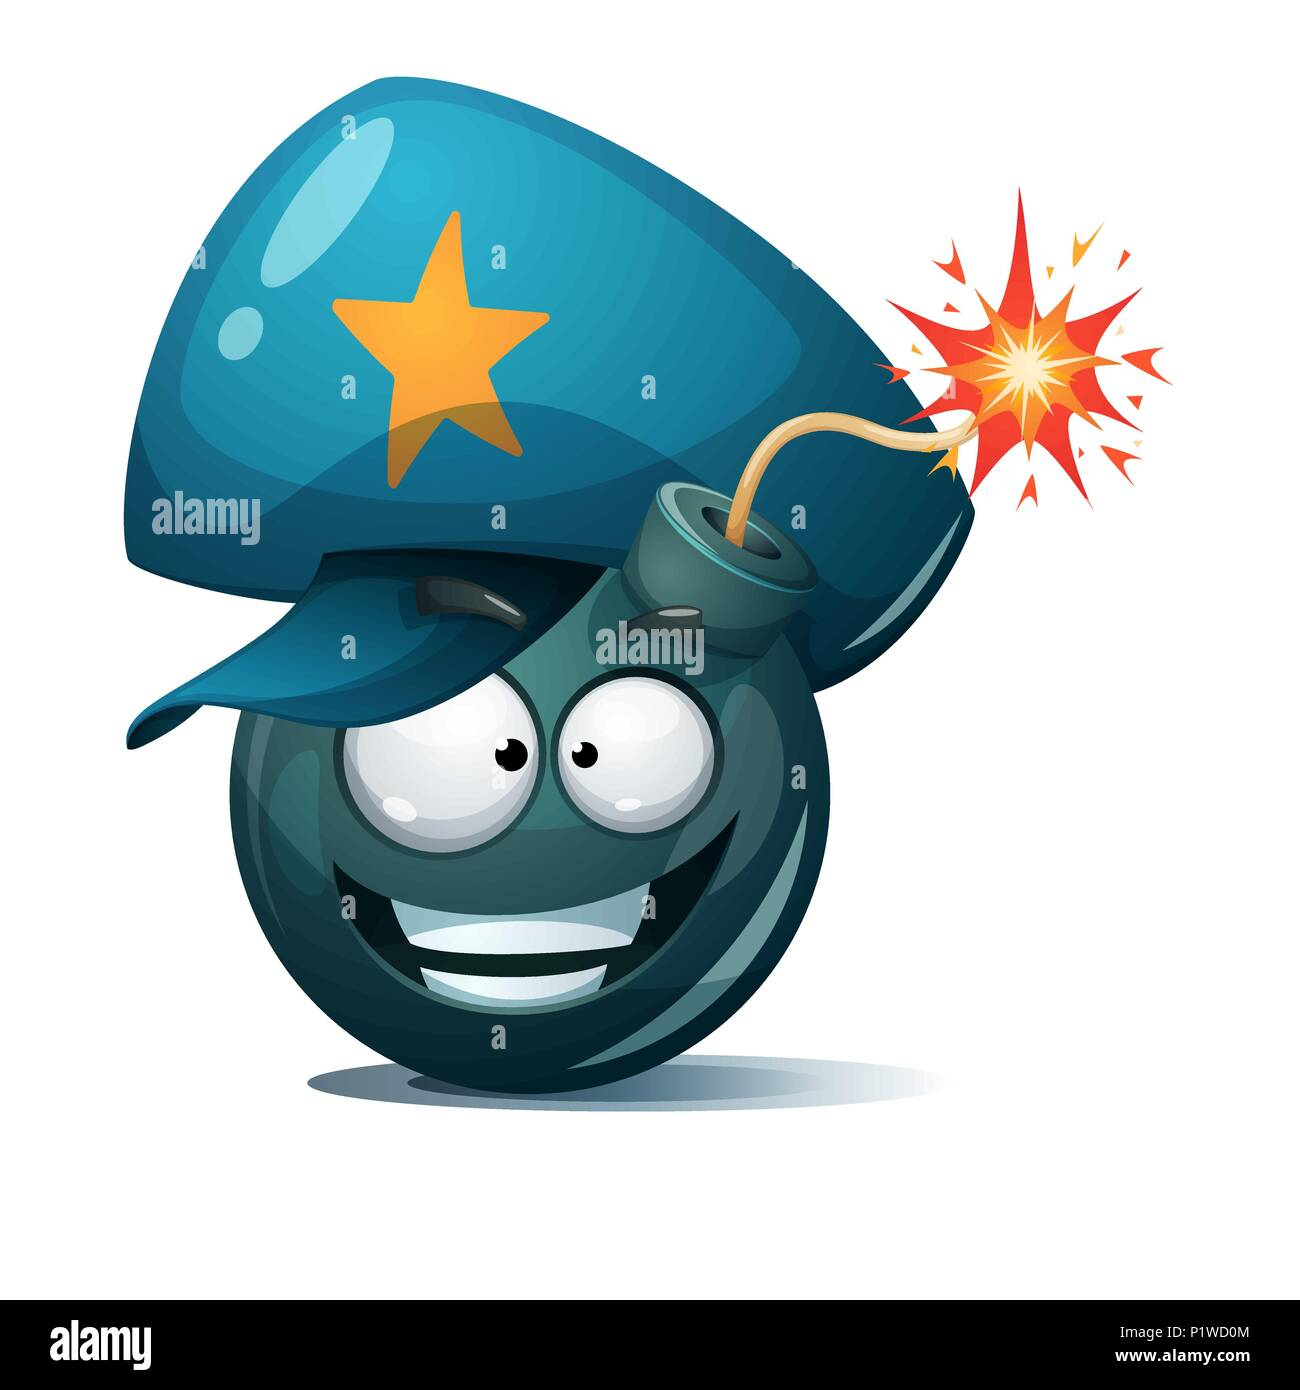 Cartoon bomb, fuse, wick, spark icon. Police smiley. - Stock Image